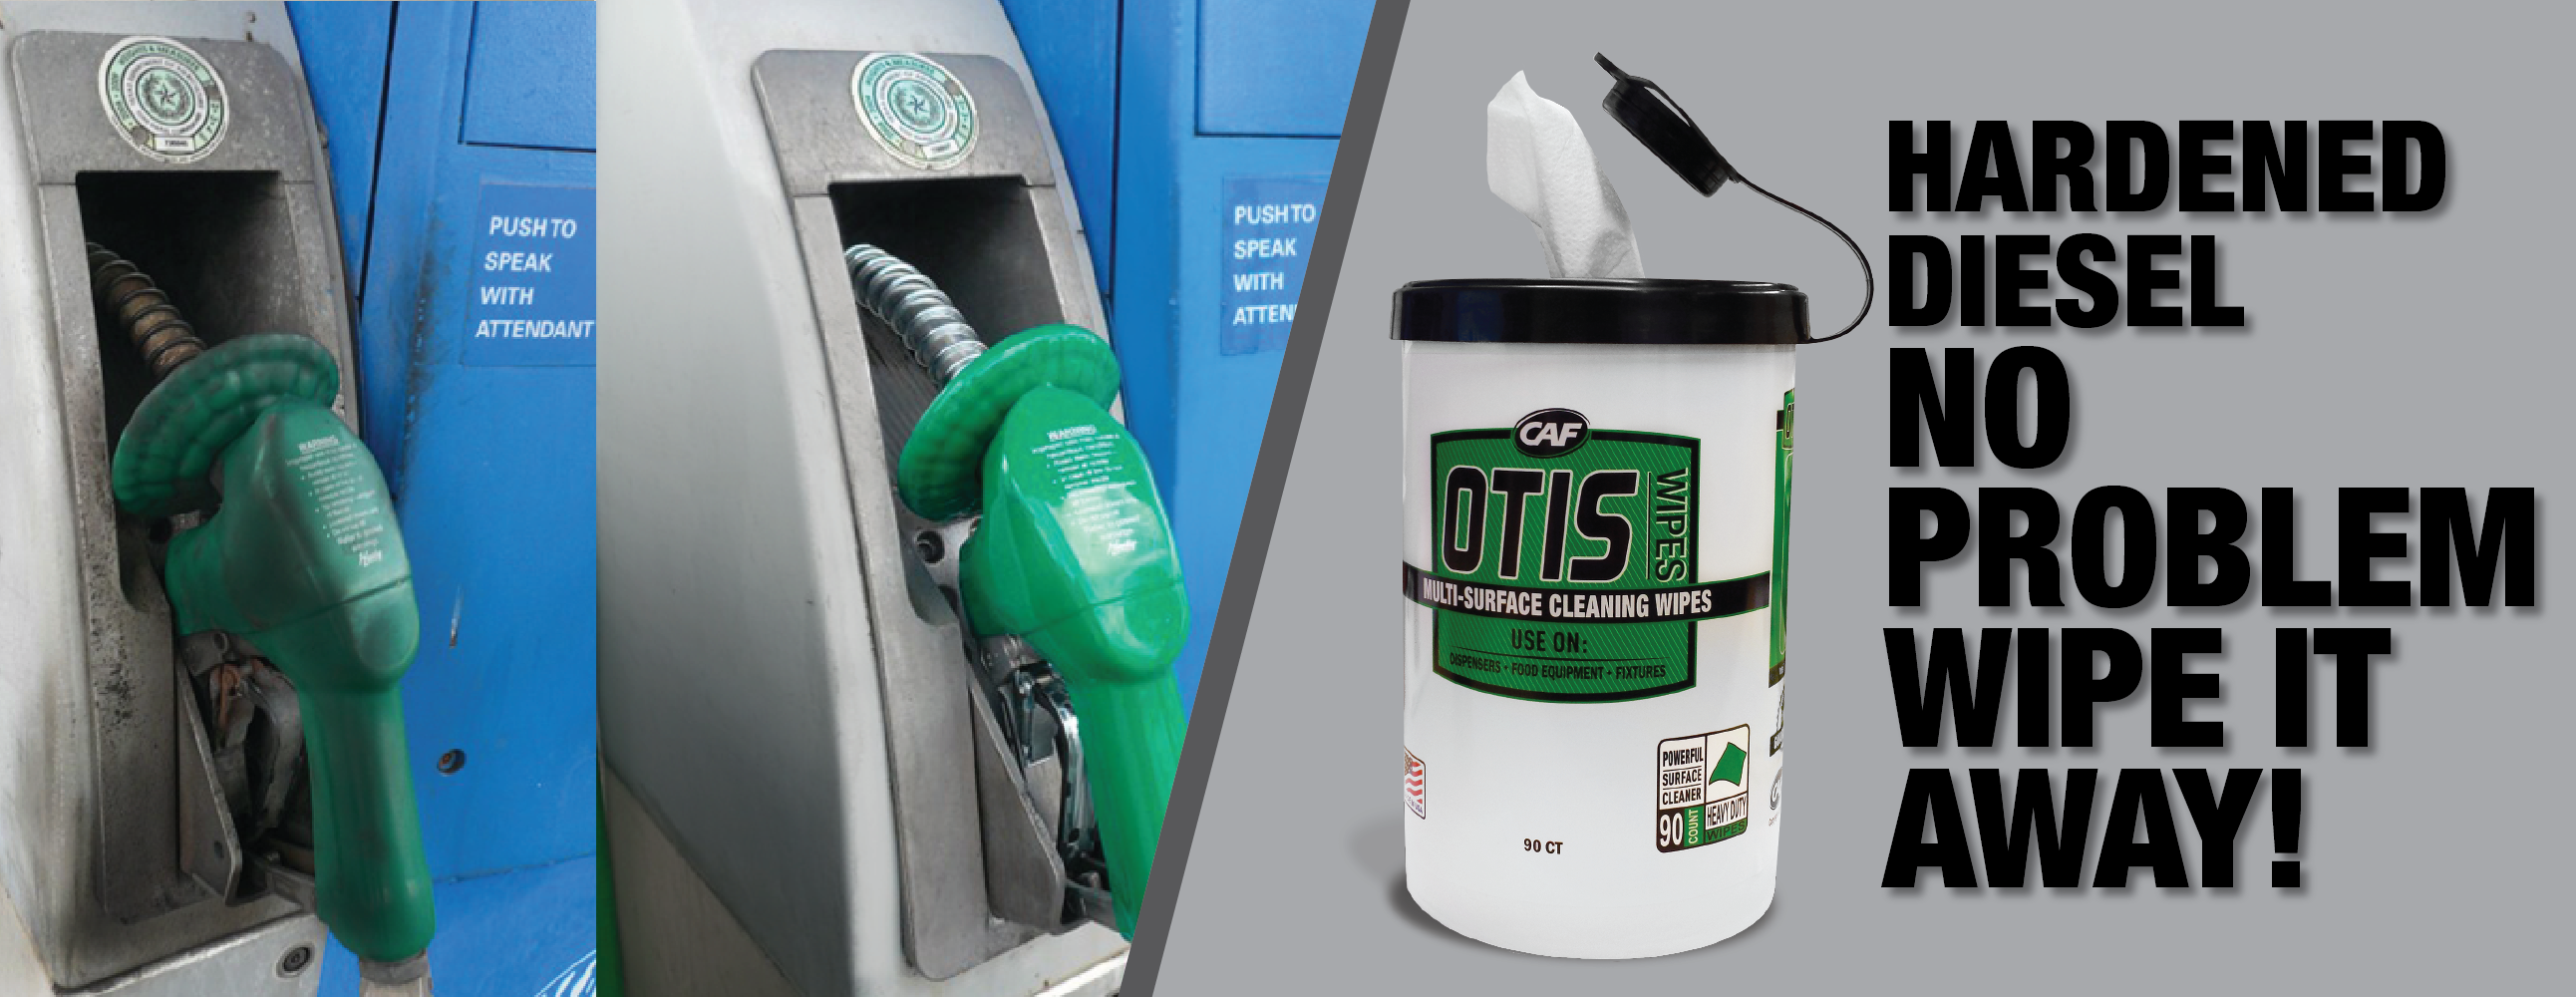 How to Clean Fuel Dispensers - EASY